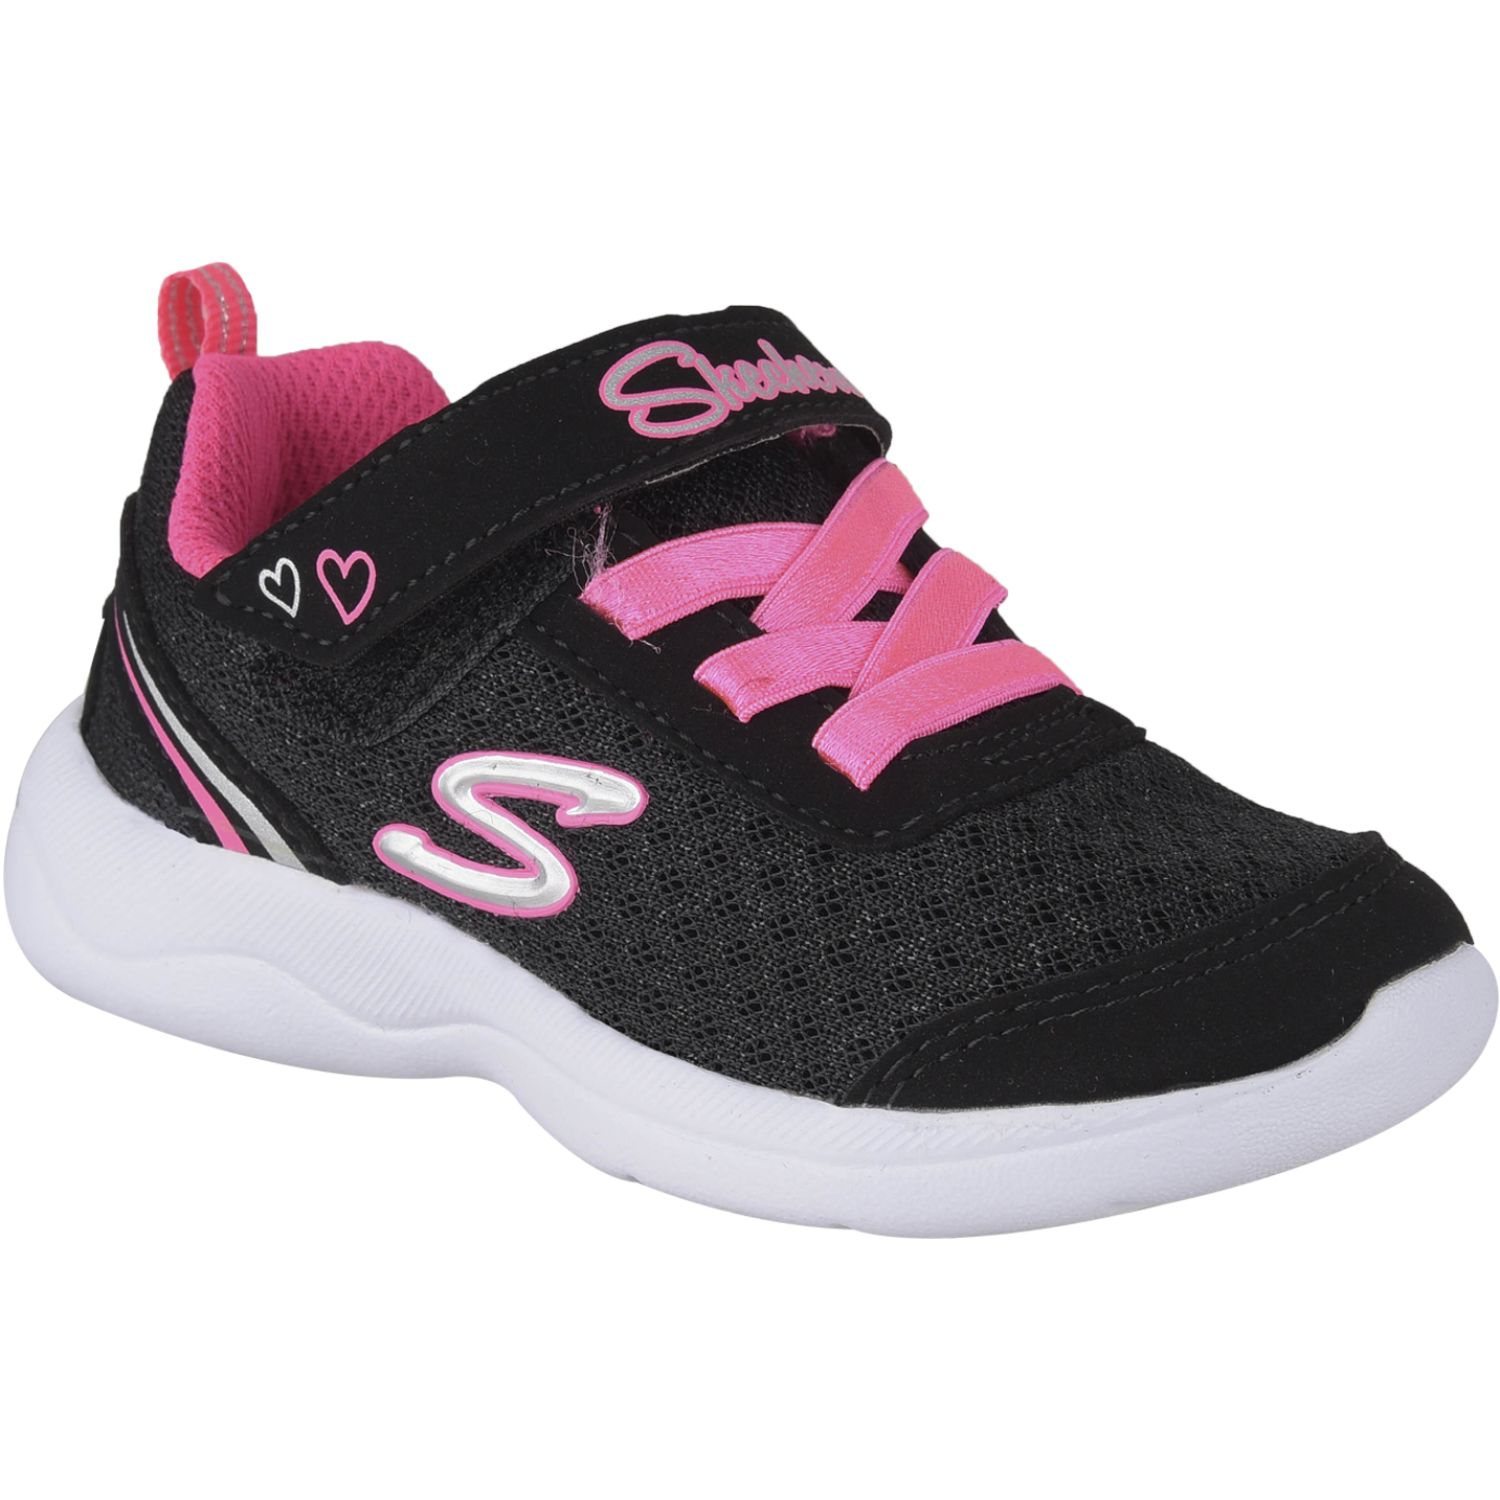 Skechers skech-stepz 2.0 - sparkle trainer Negro / fucsia Walking